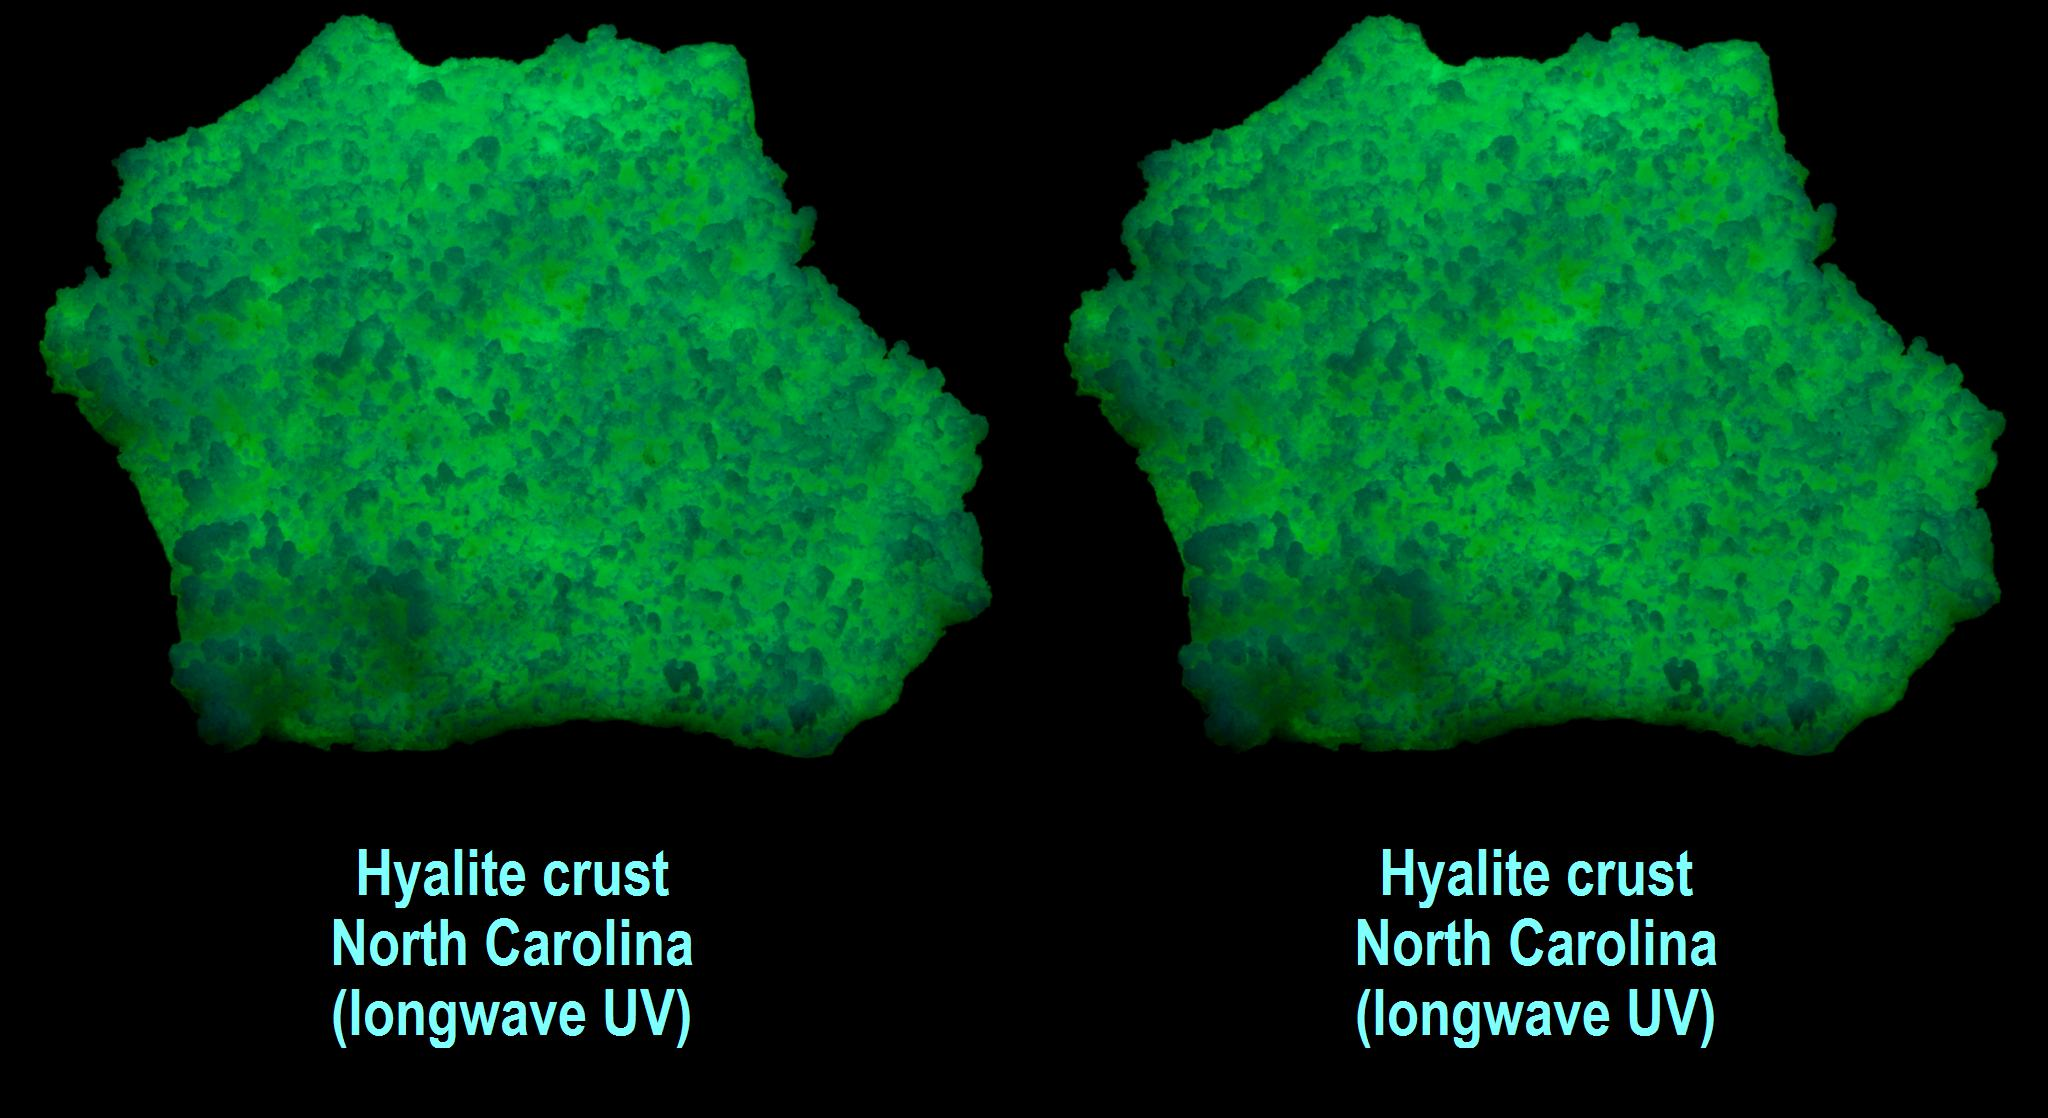 Hyalite opal crust, North Carolina - scanner, with longwave ultraviolet back lighting